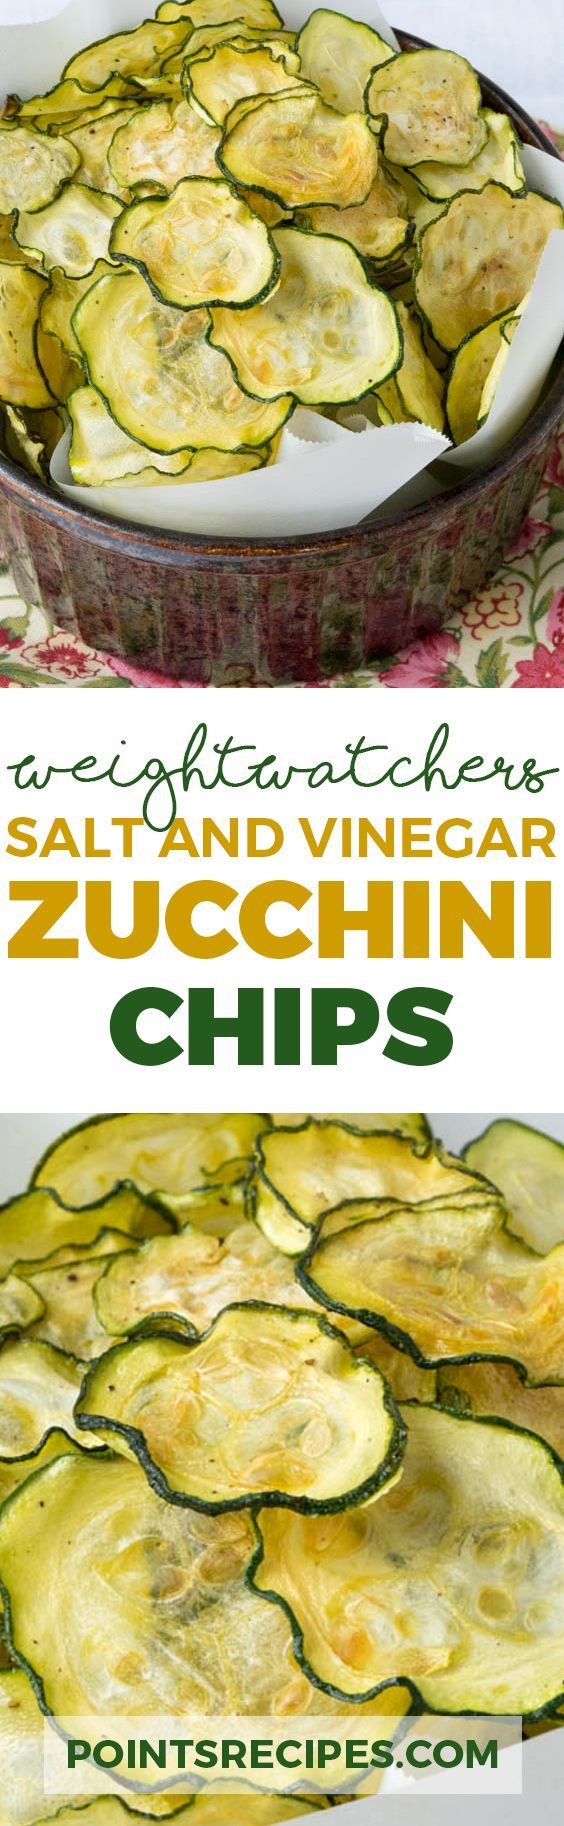 Salt and Vinegar Zucchini Chips (Weight Watchers SmartPoints)